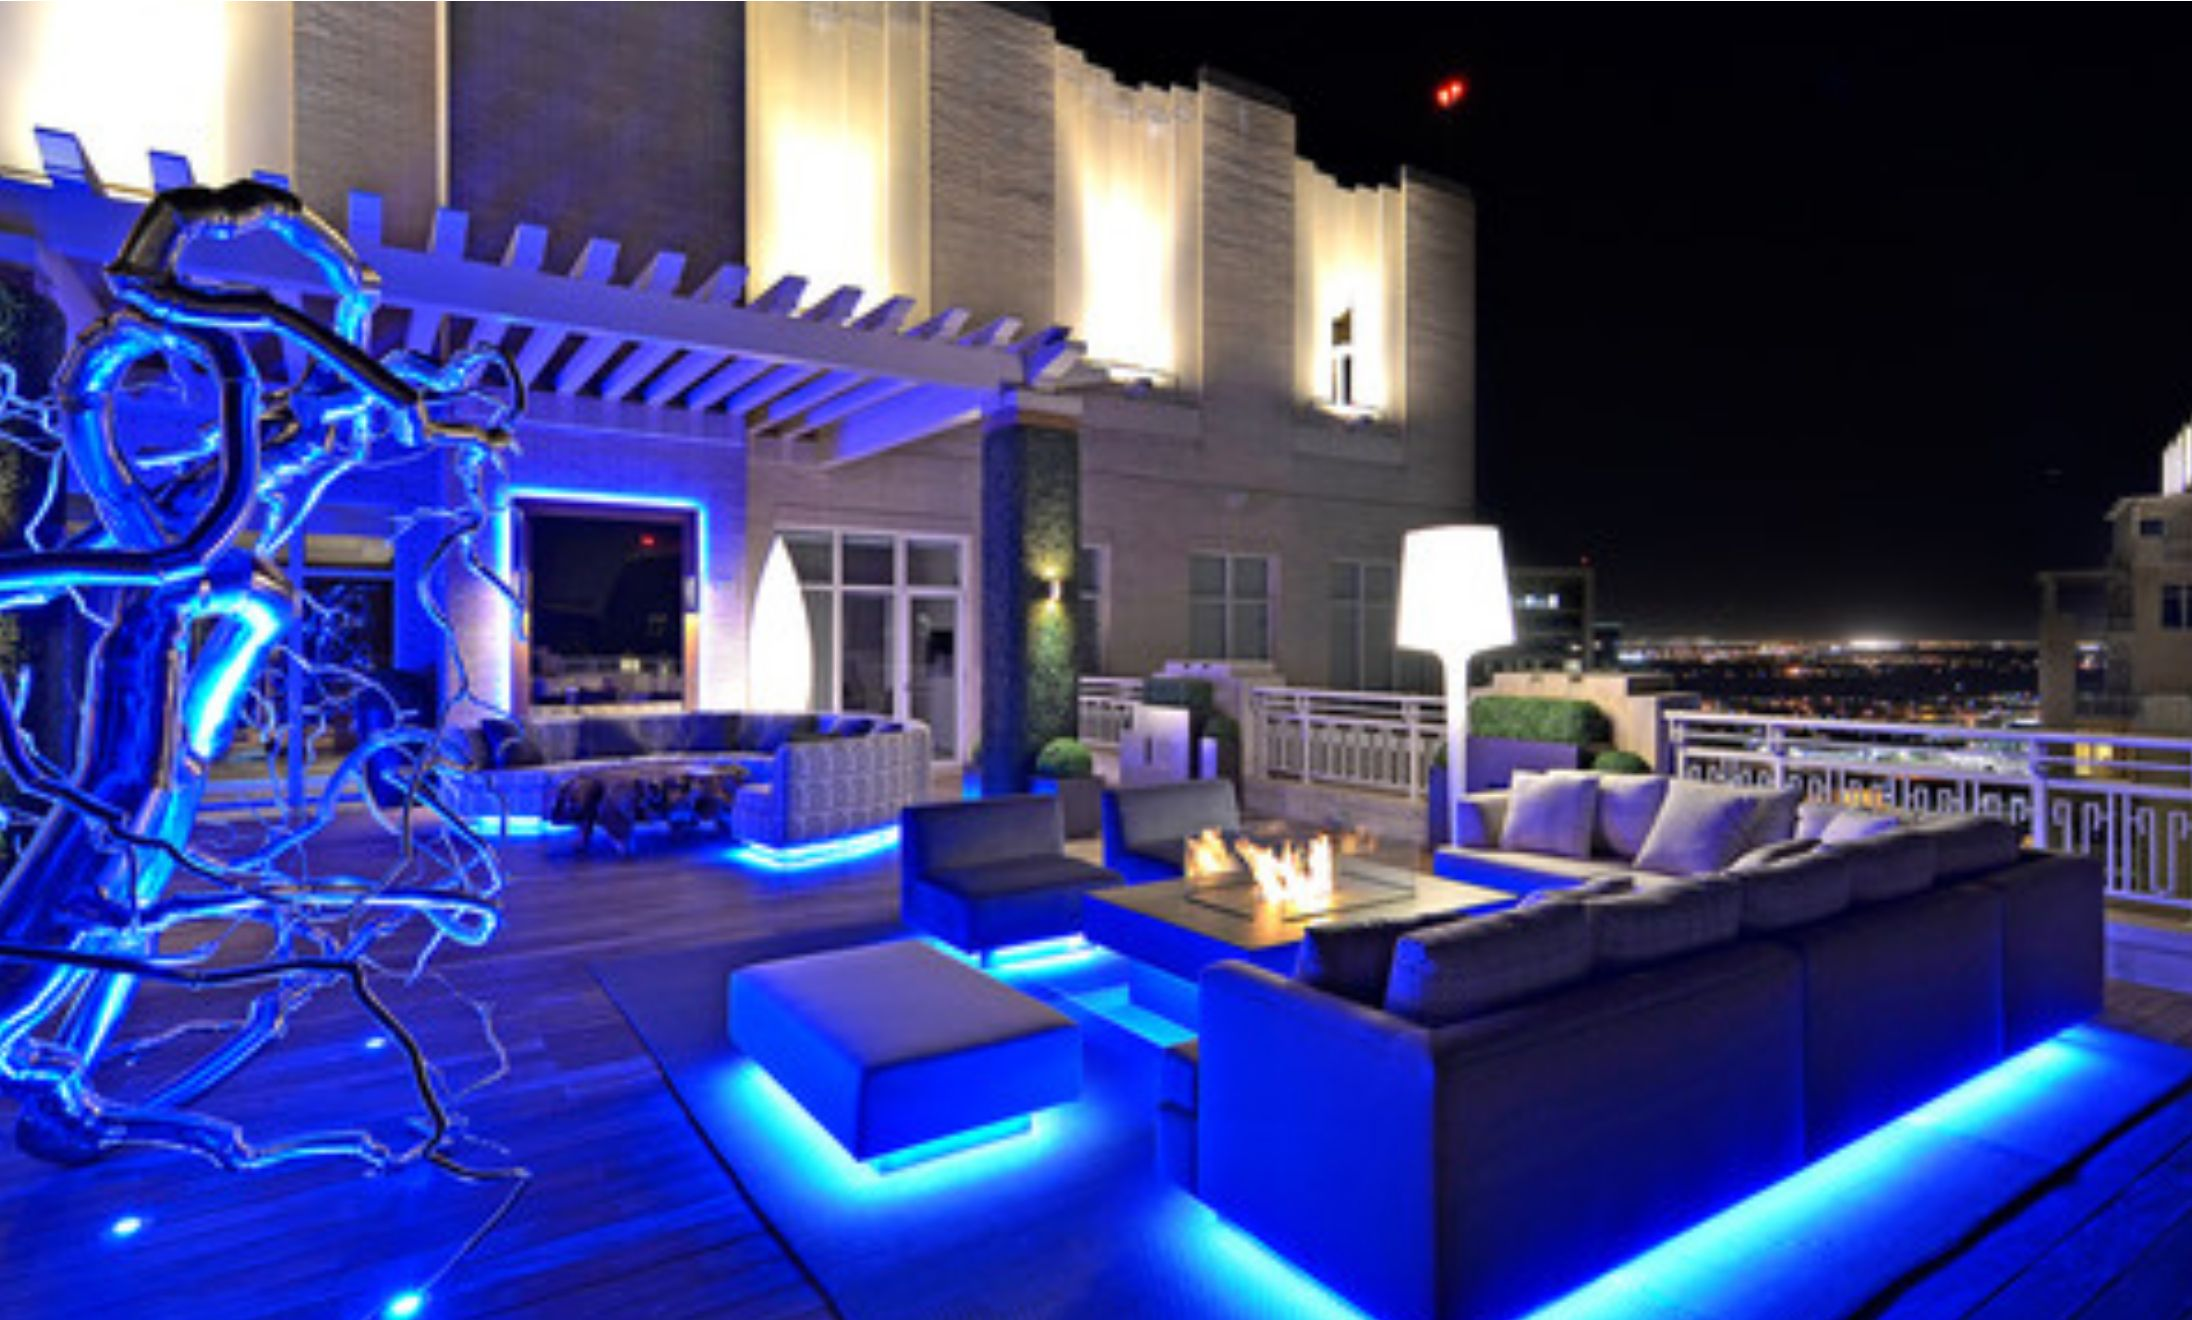 Led Lighting Outdoors Under The Sky Outdoor Deck